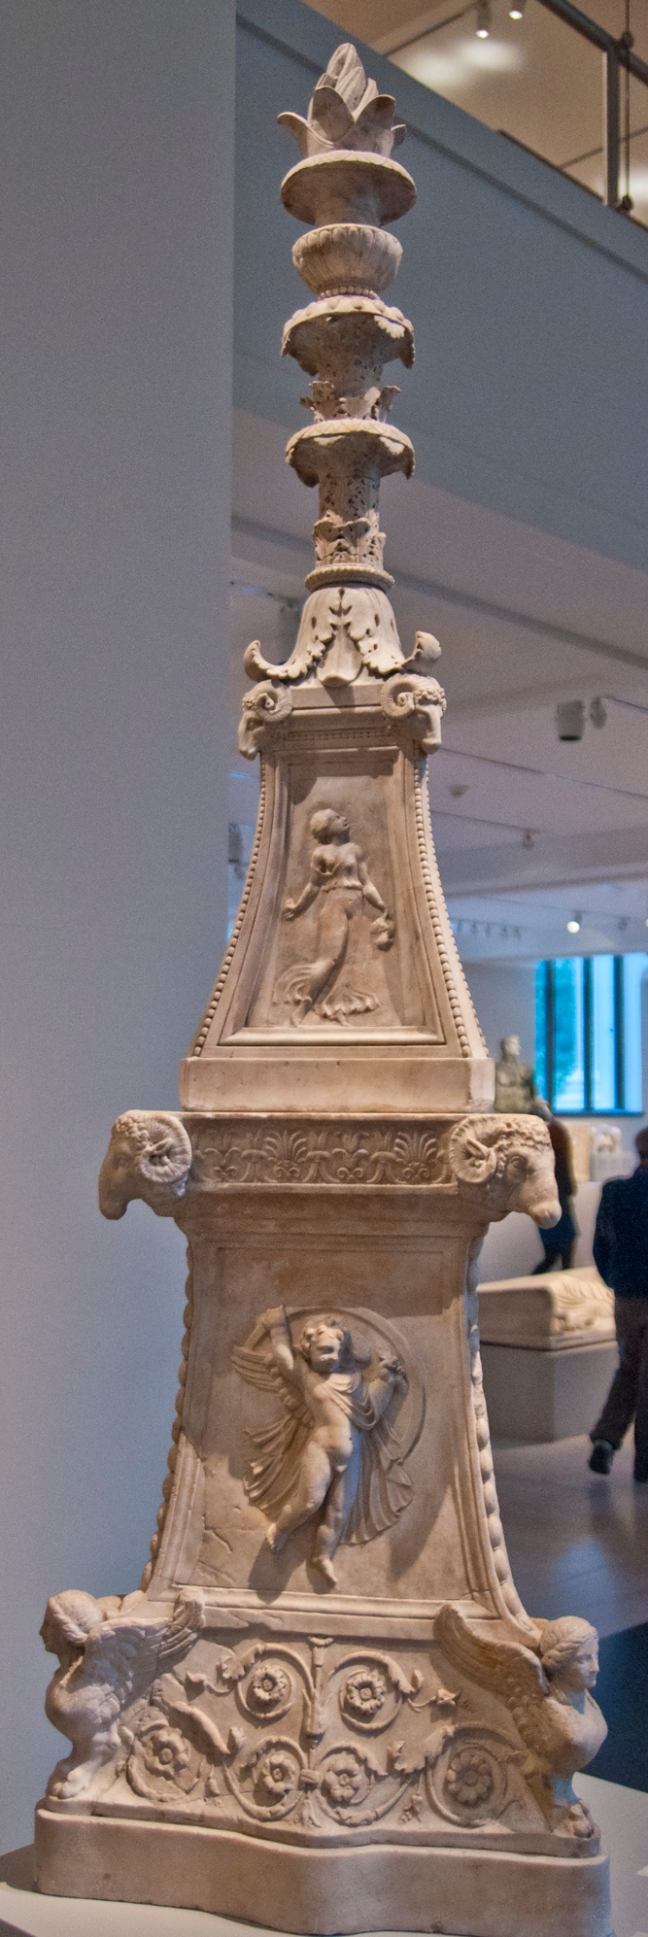 This single lamp stand is much taller than most, but it might be closer to the size of the seven lamp stands among which the Son of Man moved in John's initial vision. Metropolitan Museum of Art, New York, New York.  © copyright holder of this work is Richard E. Oster.  Page 76, figure 40.